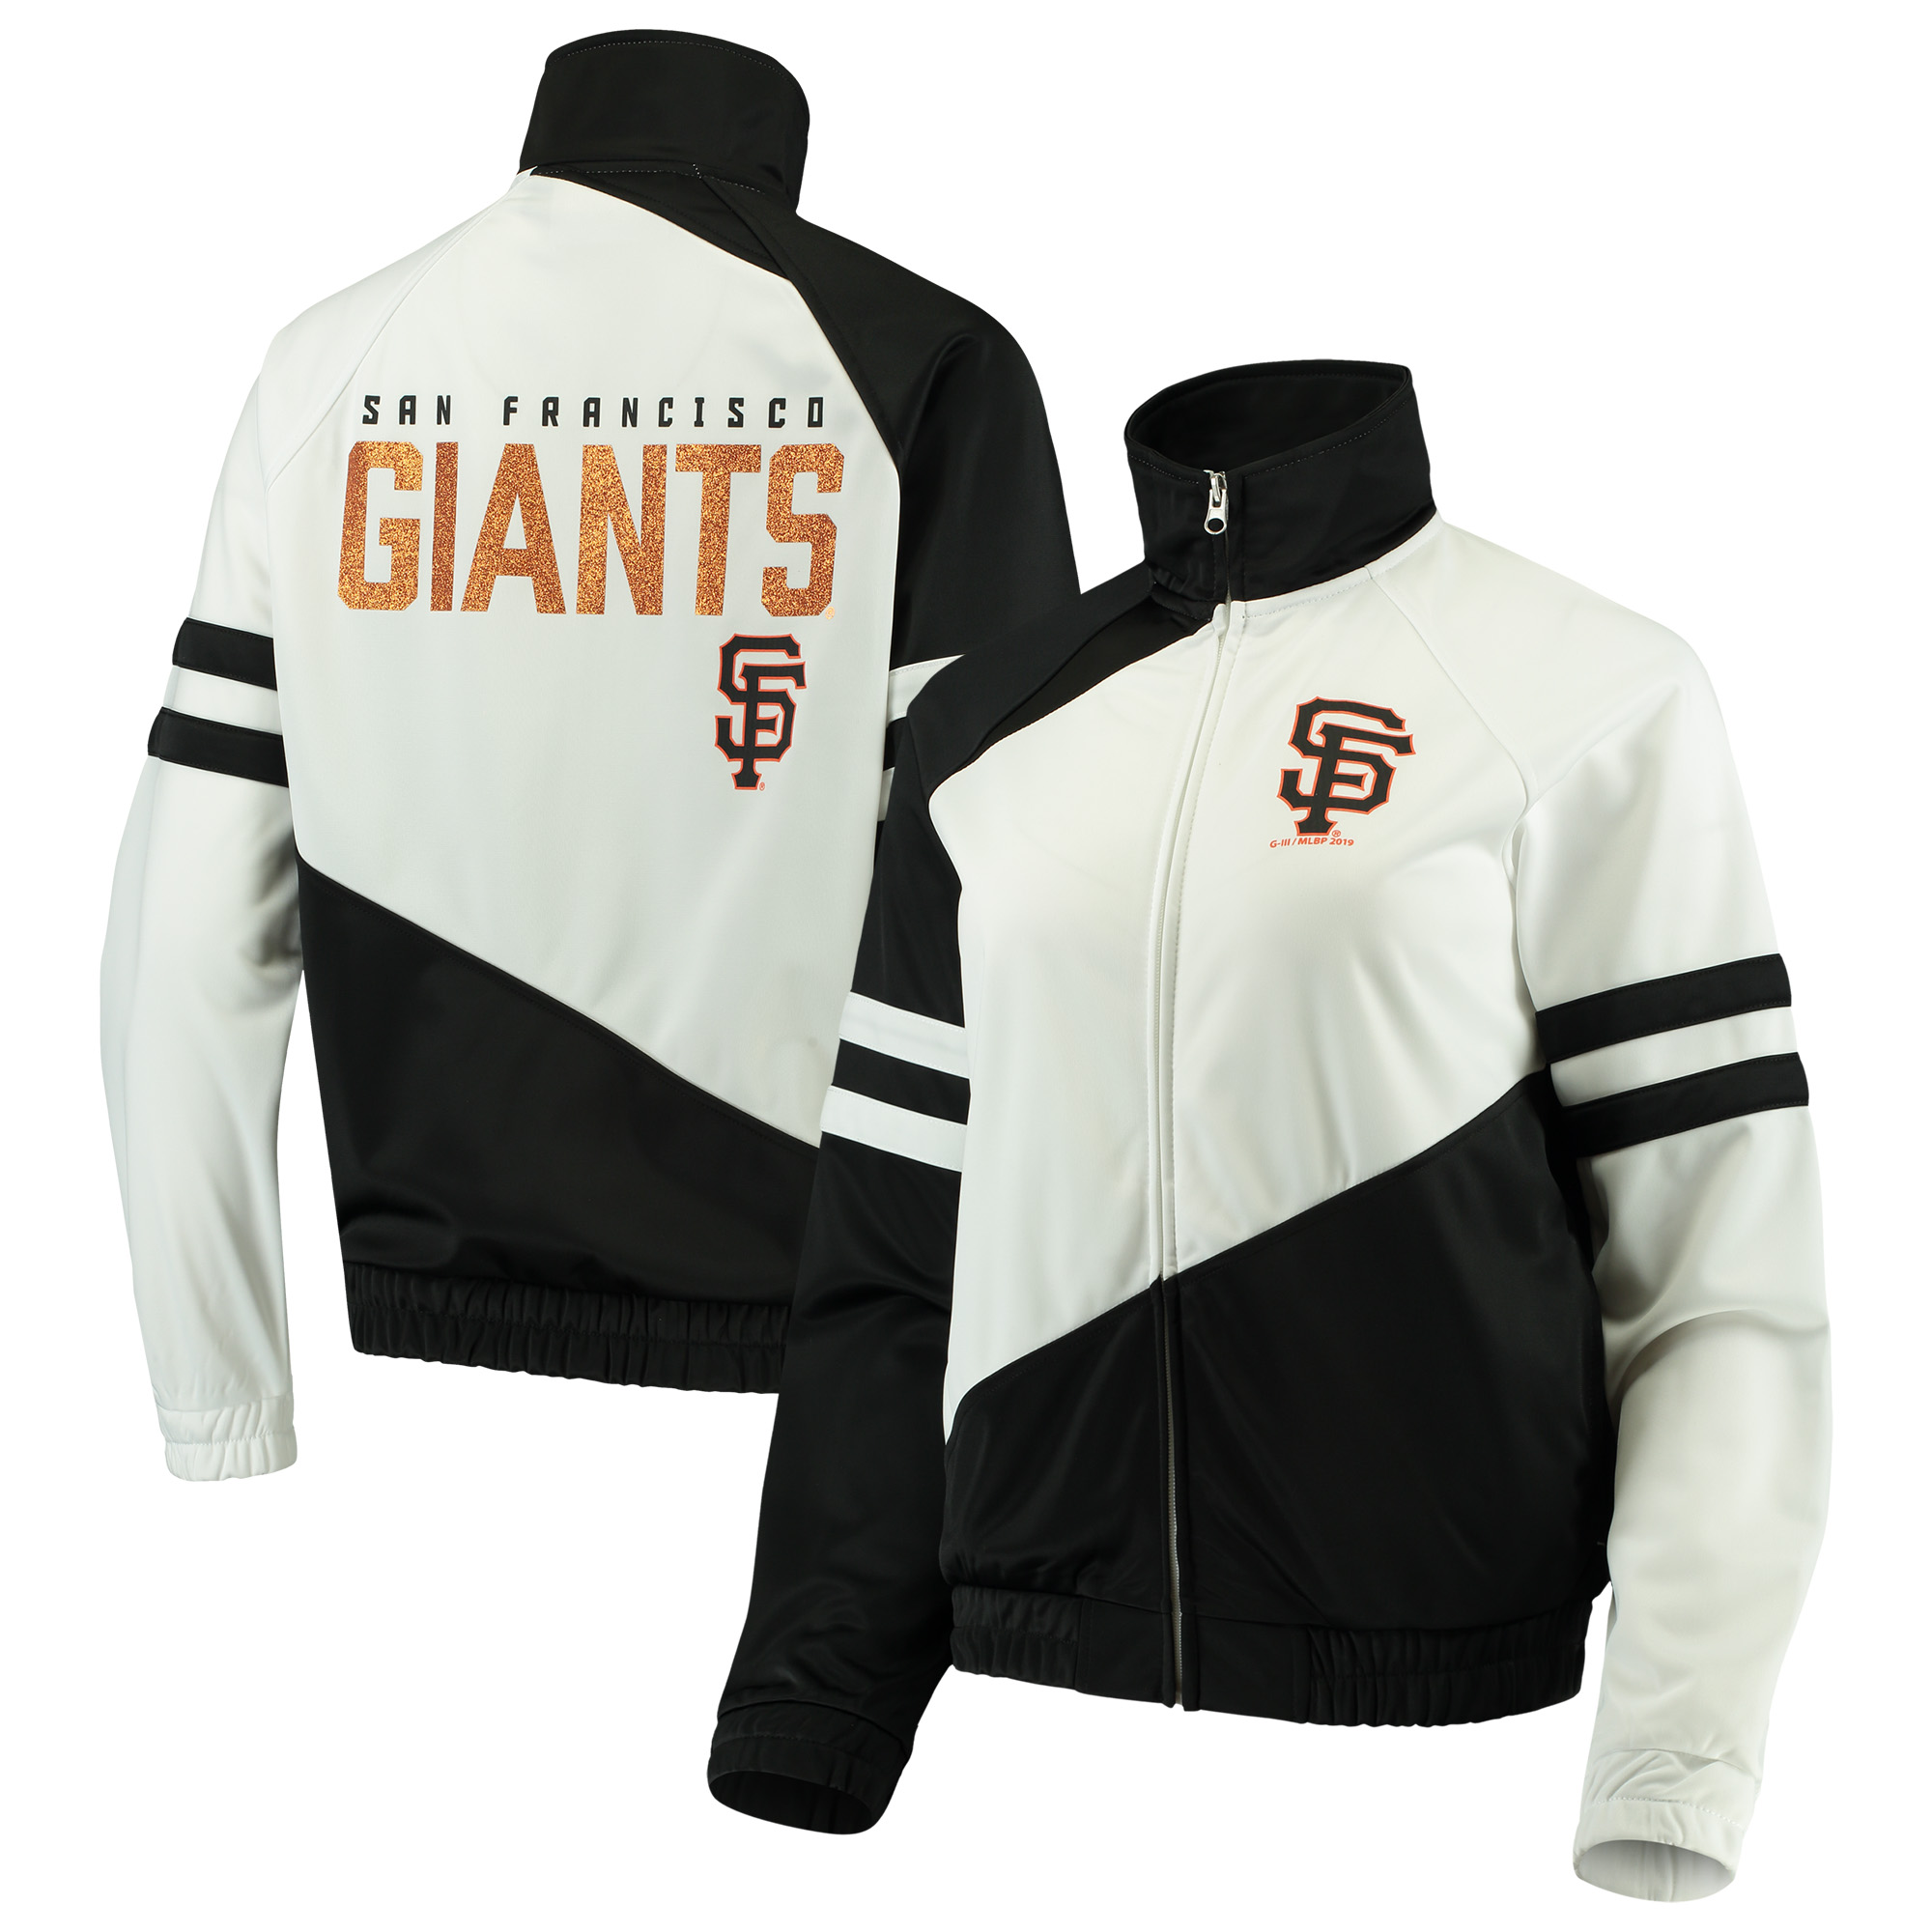 San Francisco Giants G-III 4Her by Carl Banks Women's Perfect Pitch Track Jacket - Black/White